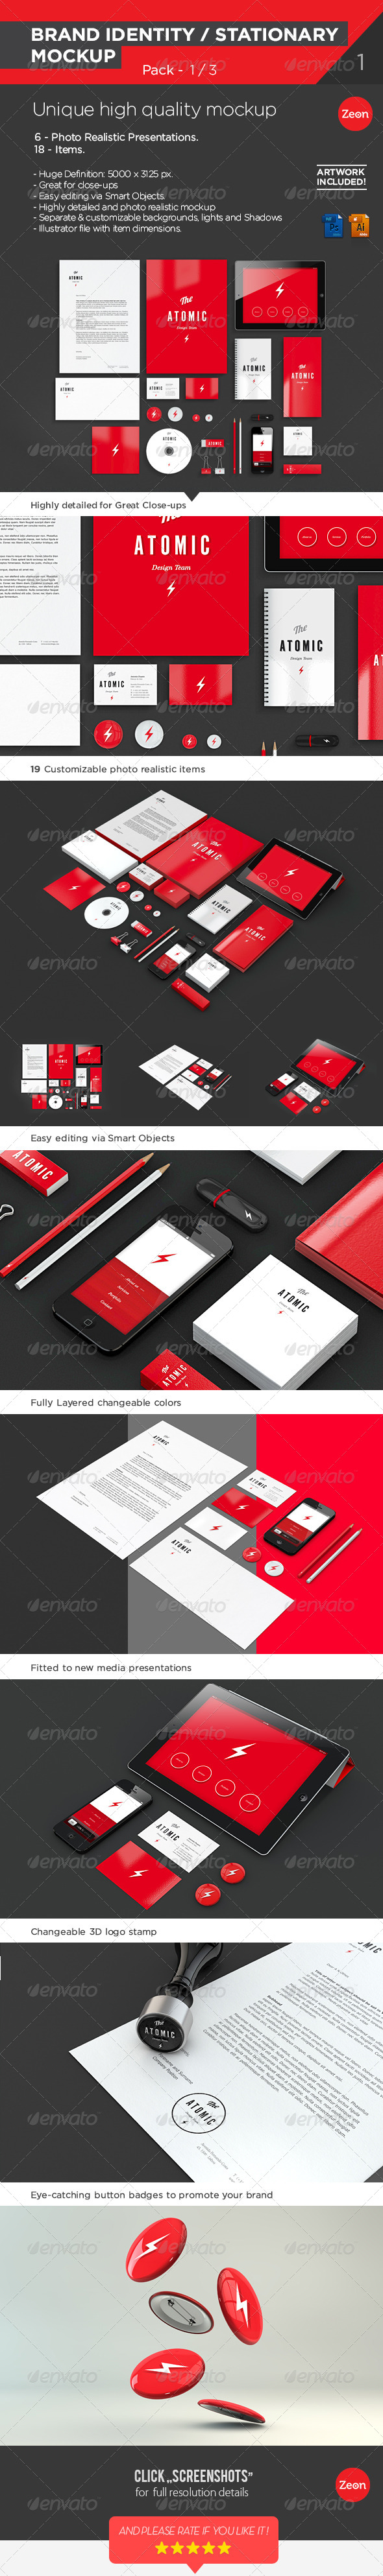 GraphicRiver Brand Identity Stationary Mockup Pack 1 3 4249345